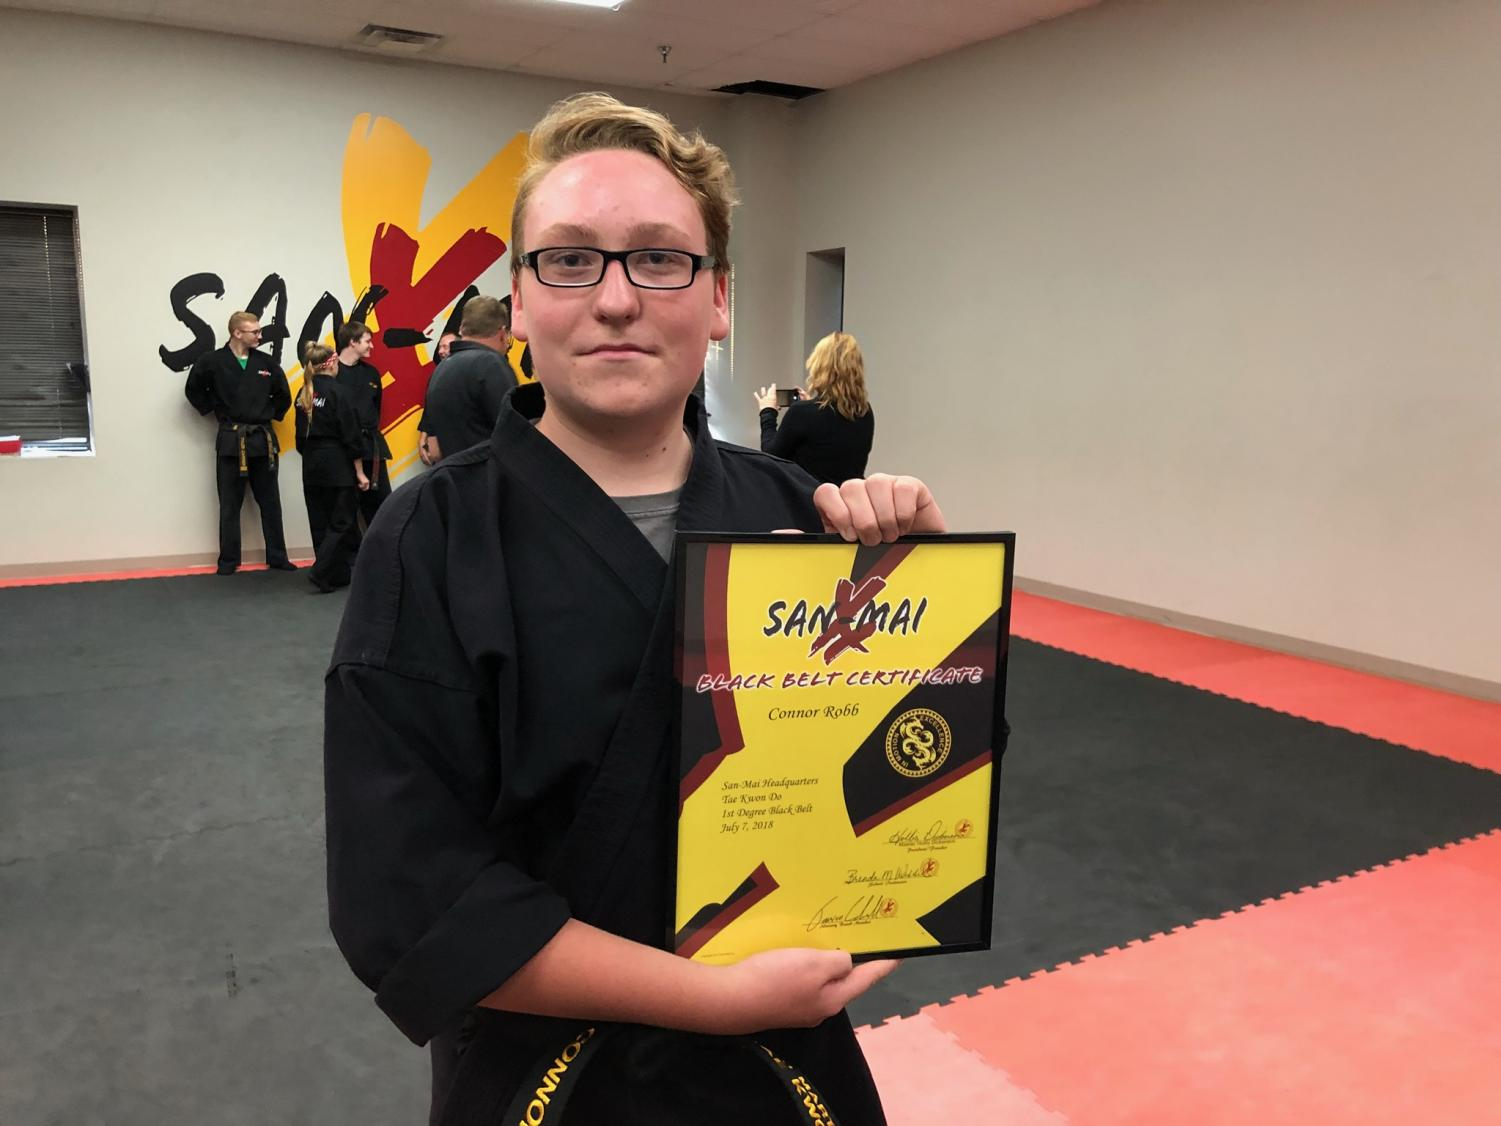 Sophomore Connor Robb holding up his certificate moments after passing the black belt exam.